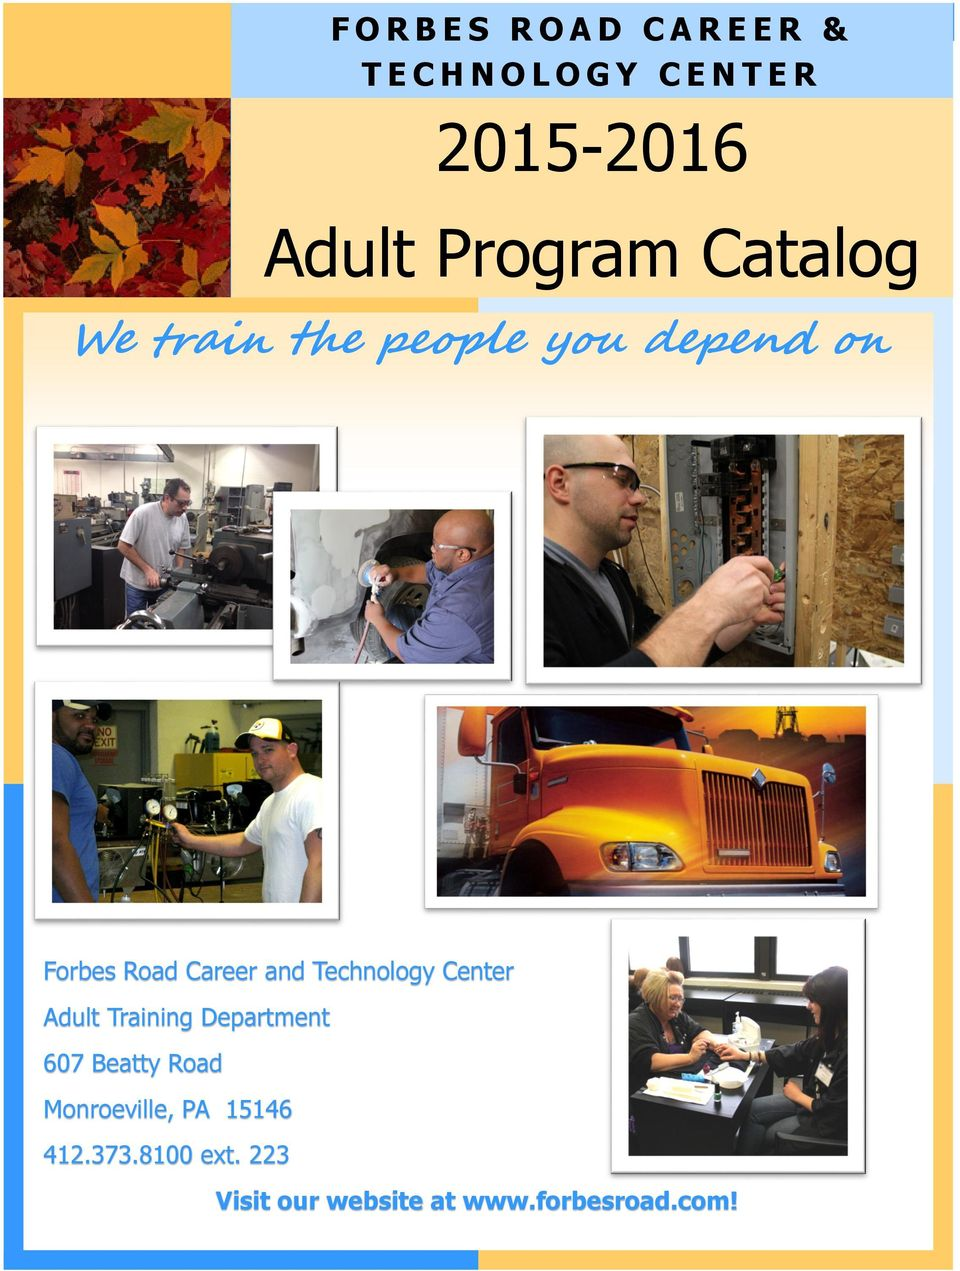 Technology Center Adult Training Department 607 Beatty Road